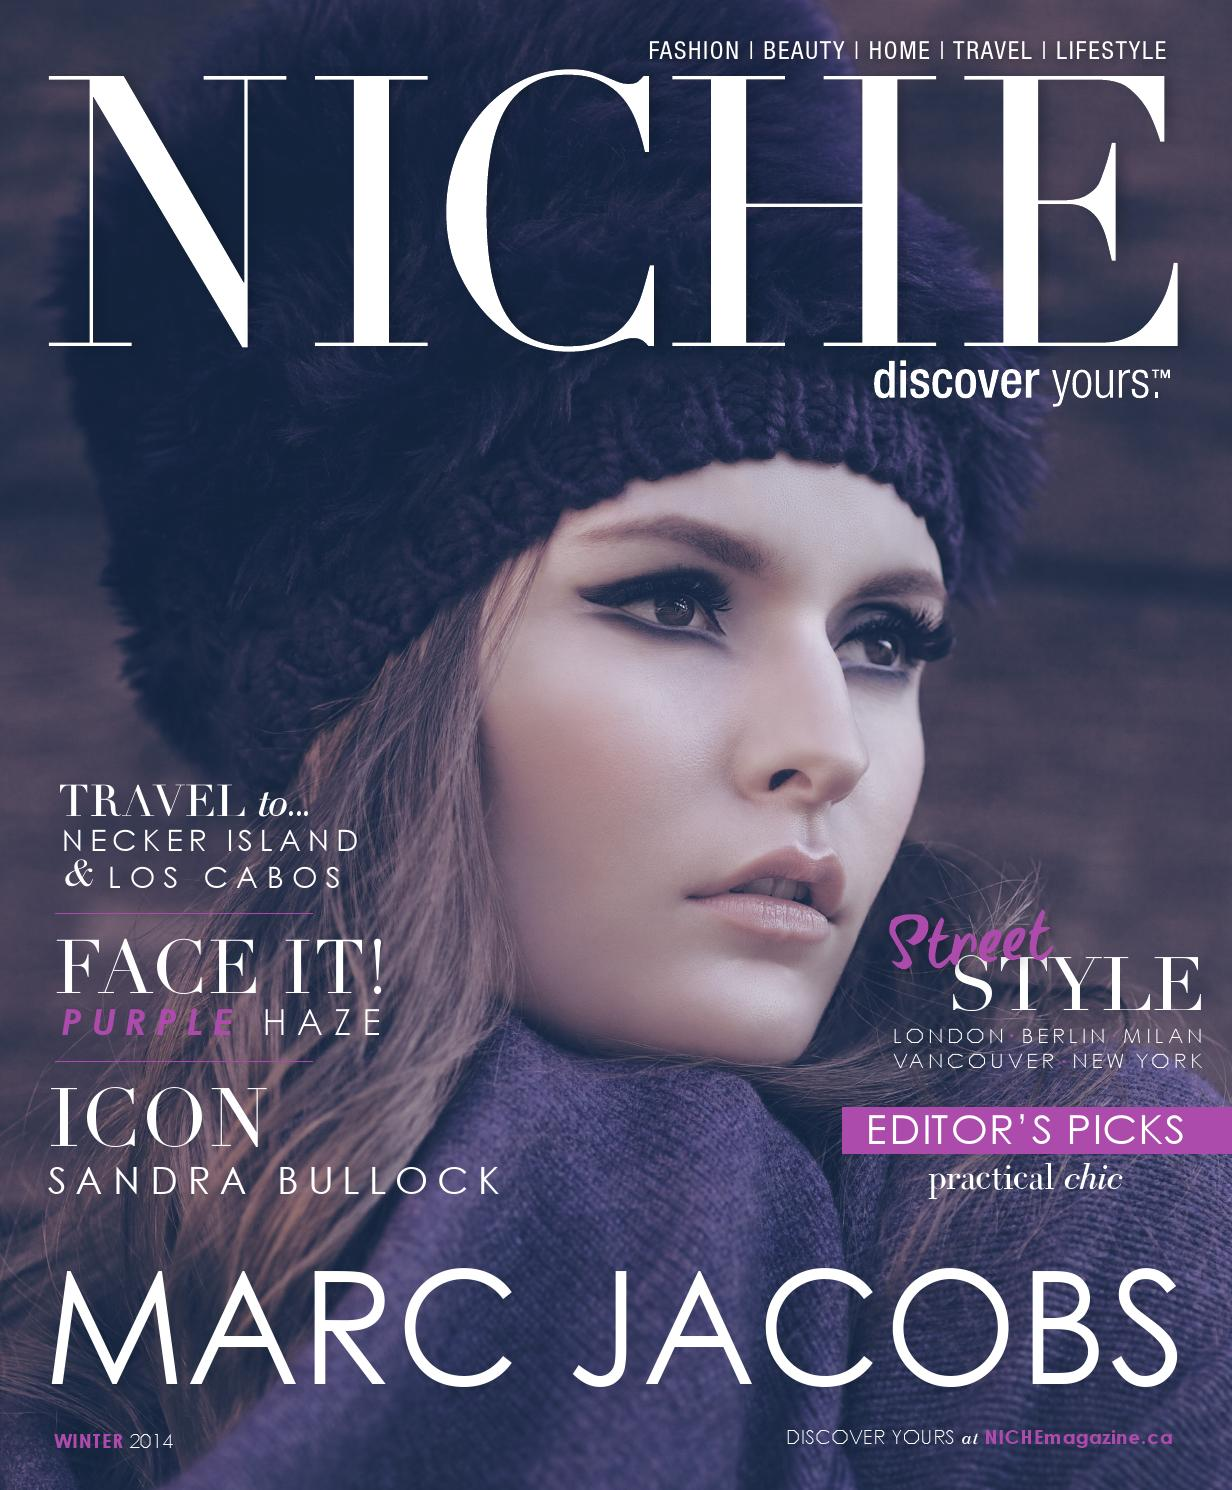 Niche Fashion Magazine Vol 02 Issue 01 Winter 2014 By Niche Magazine Issuu